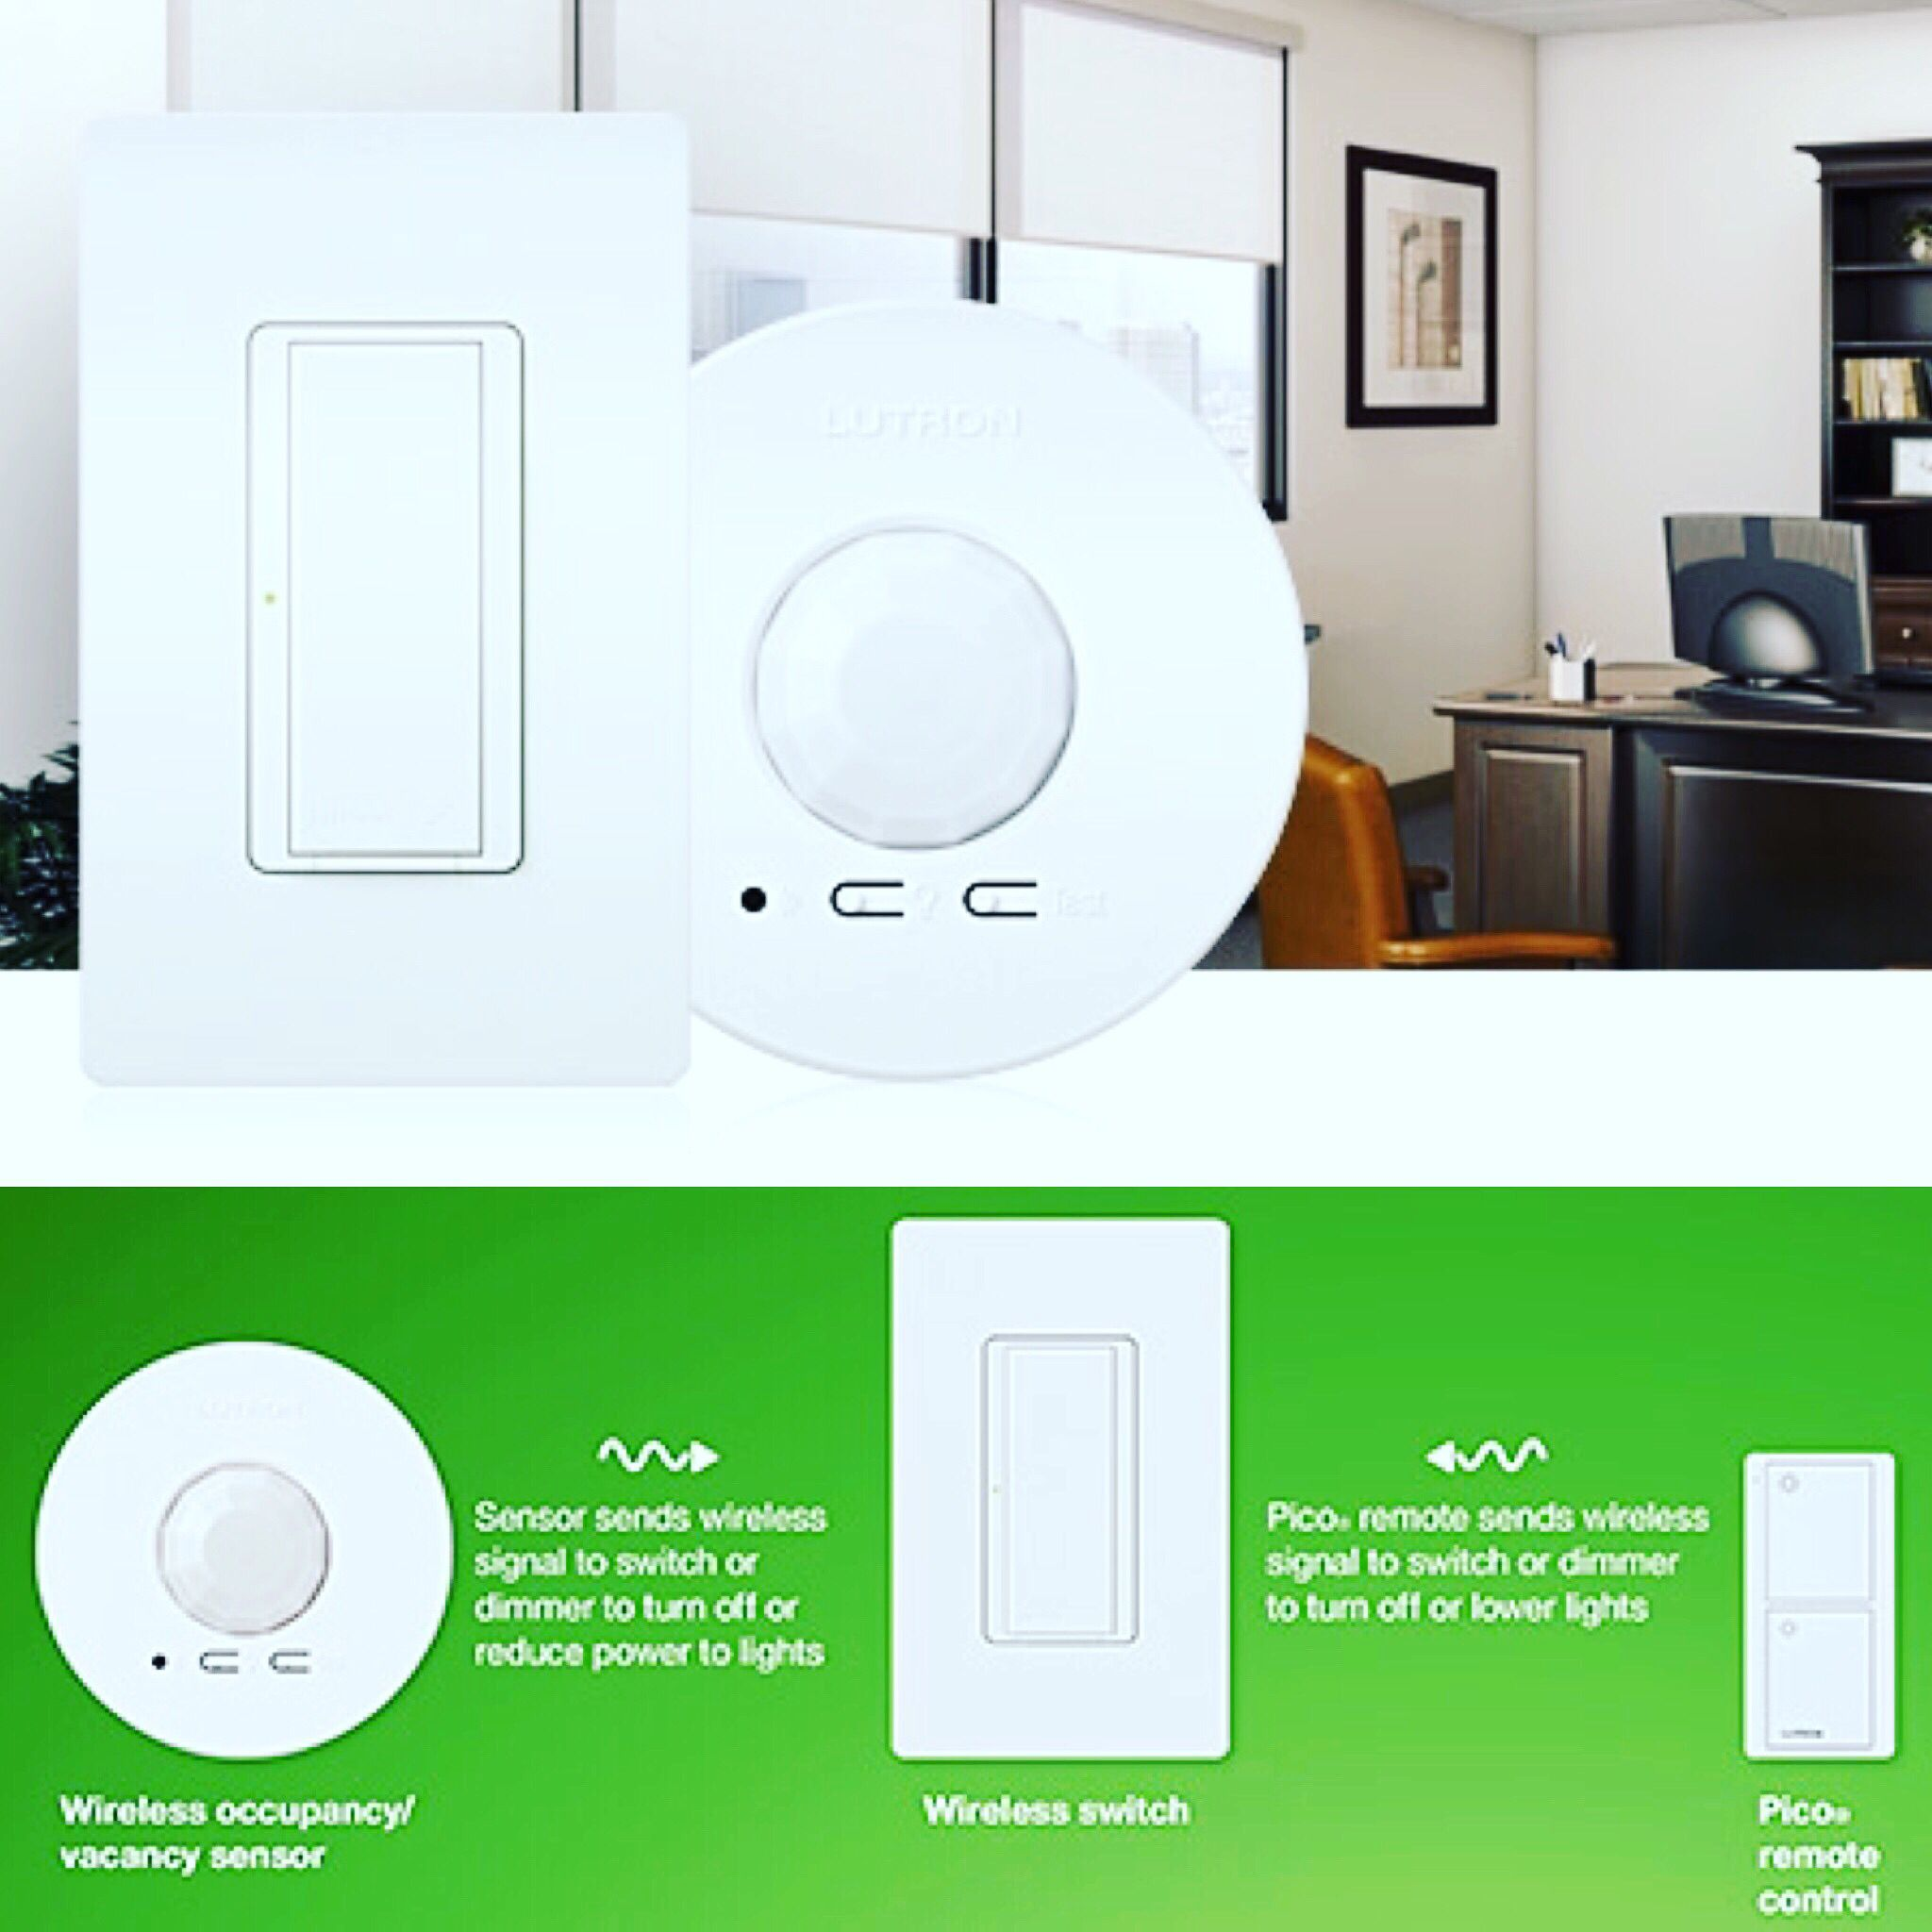 Lutron Energi Tripak Switches Sensors Install 70 Faster Than Wired Lighting Systems Help You Save Lighting Control System Wireless Lights Home Automation